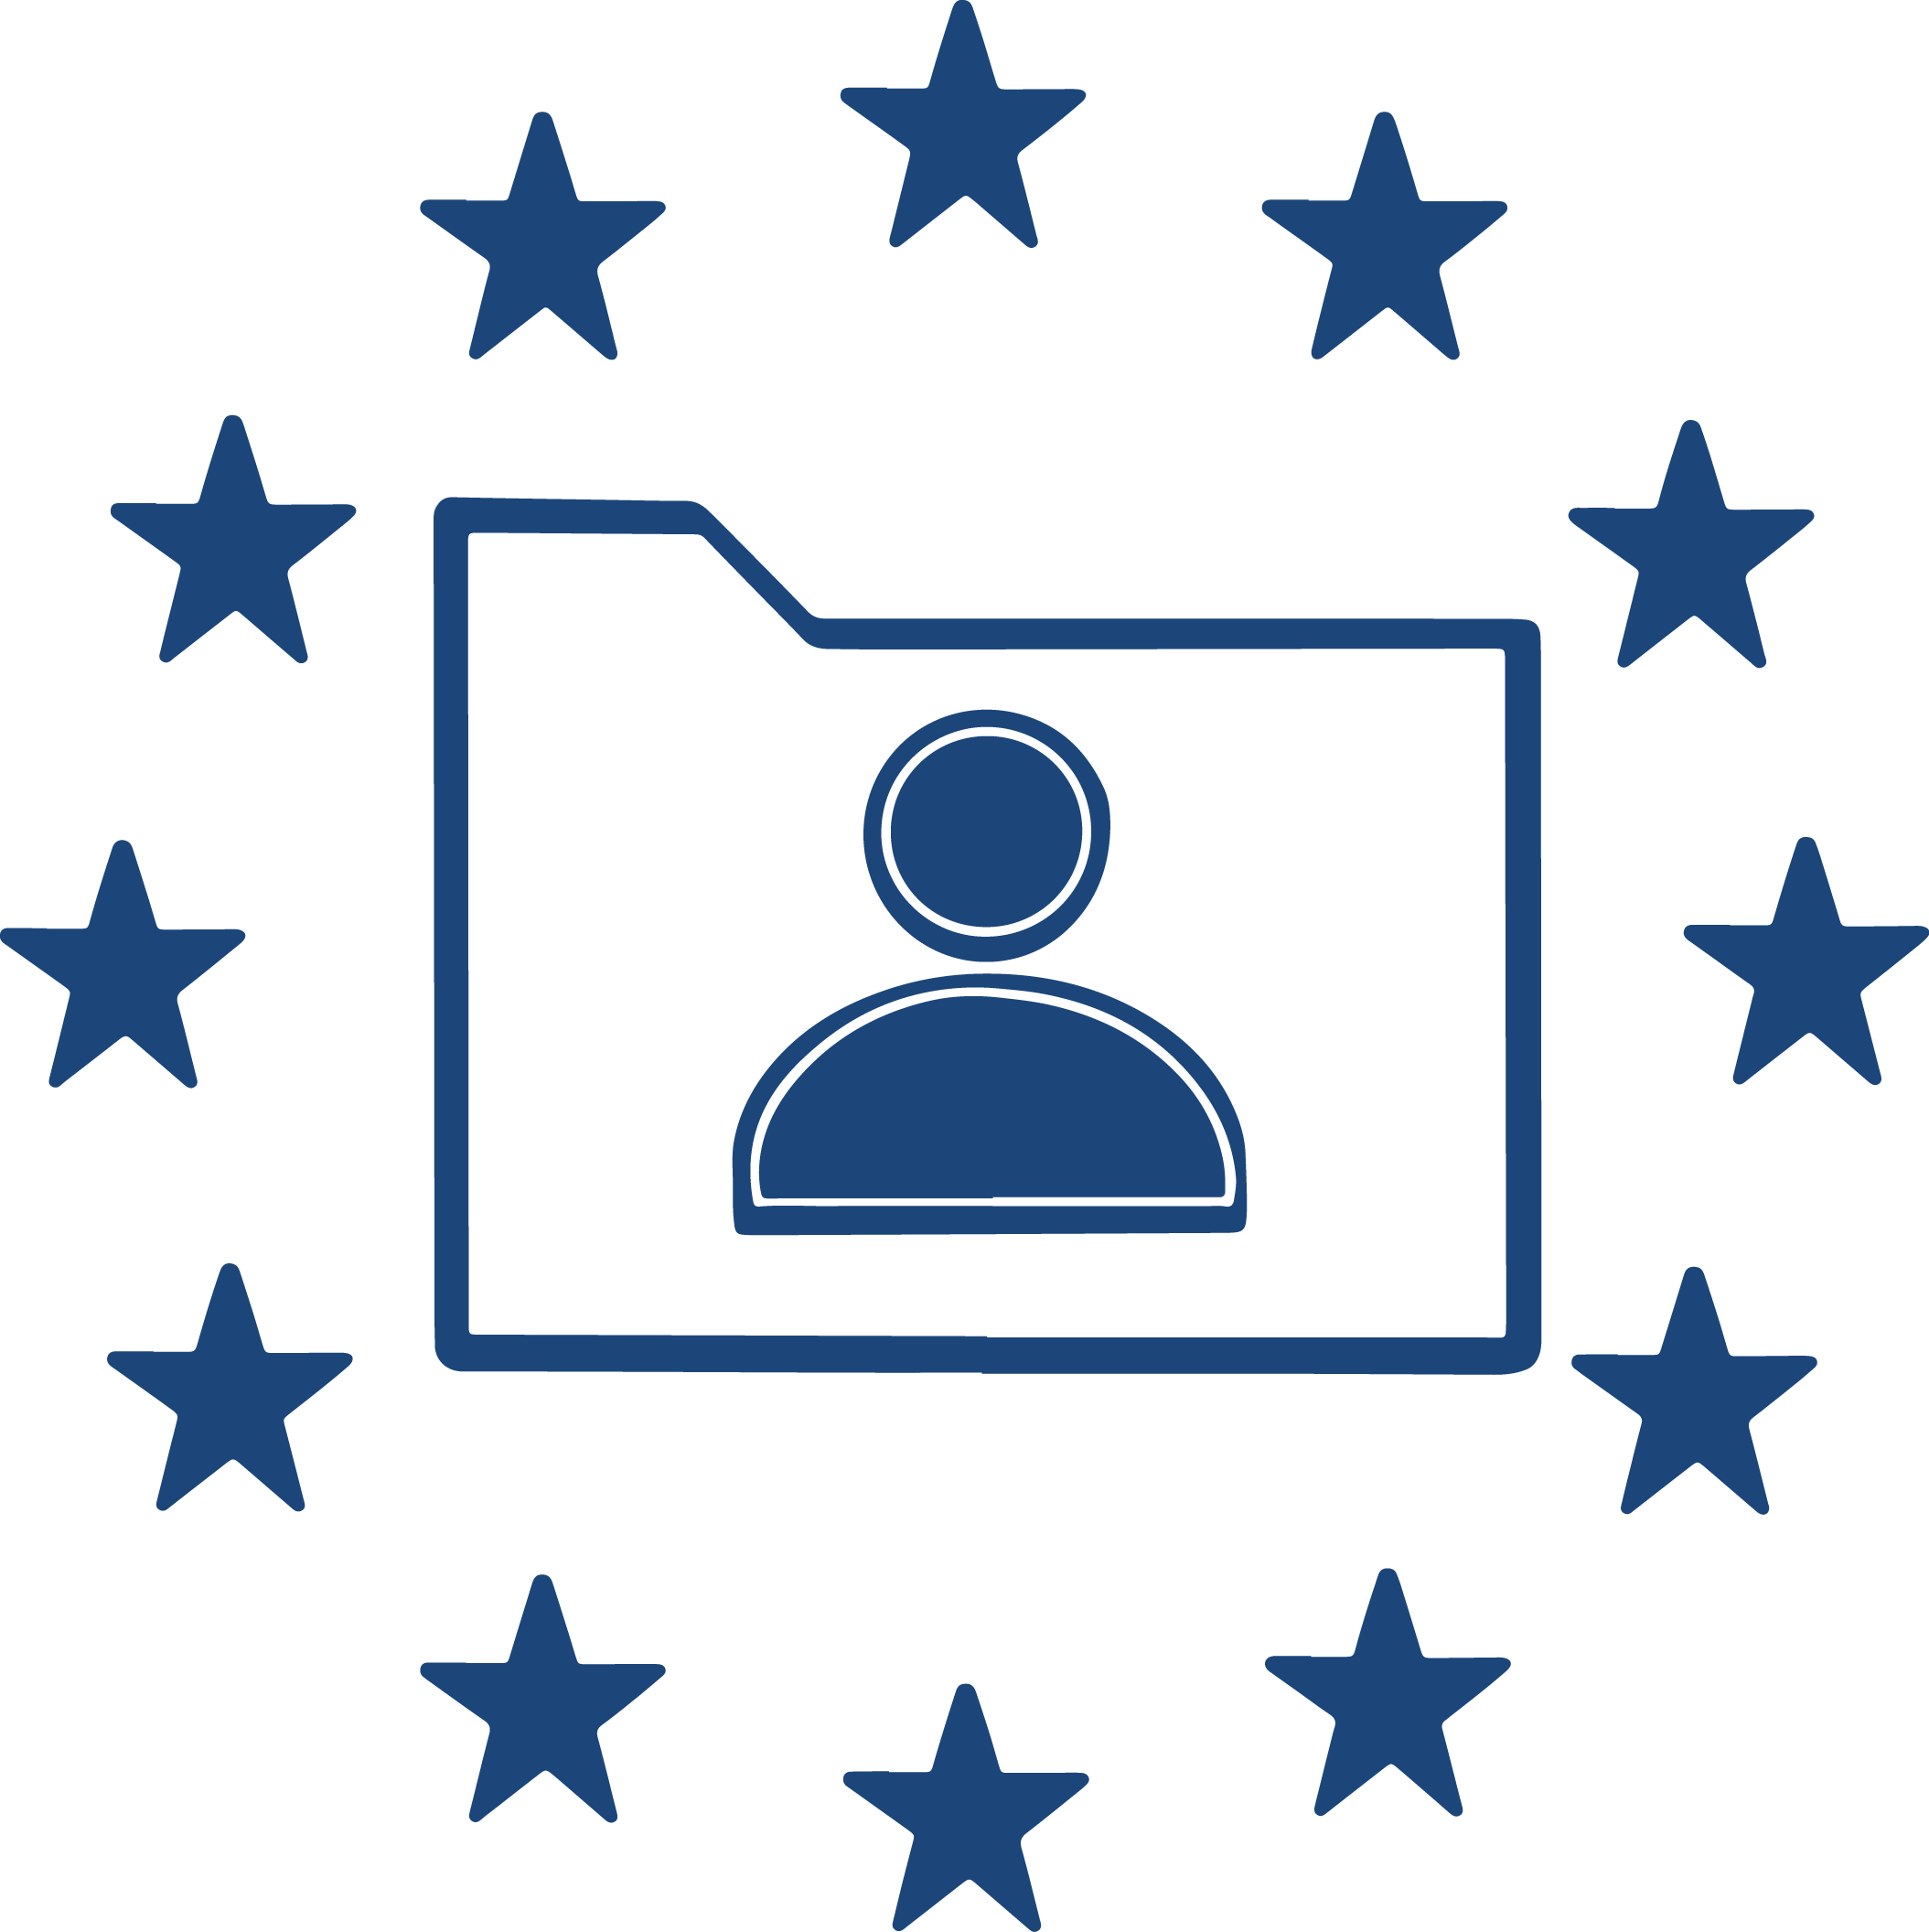 Processing of data inside the EU icon